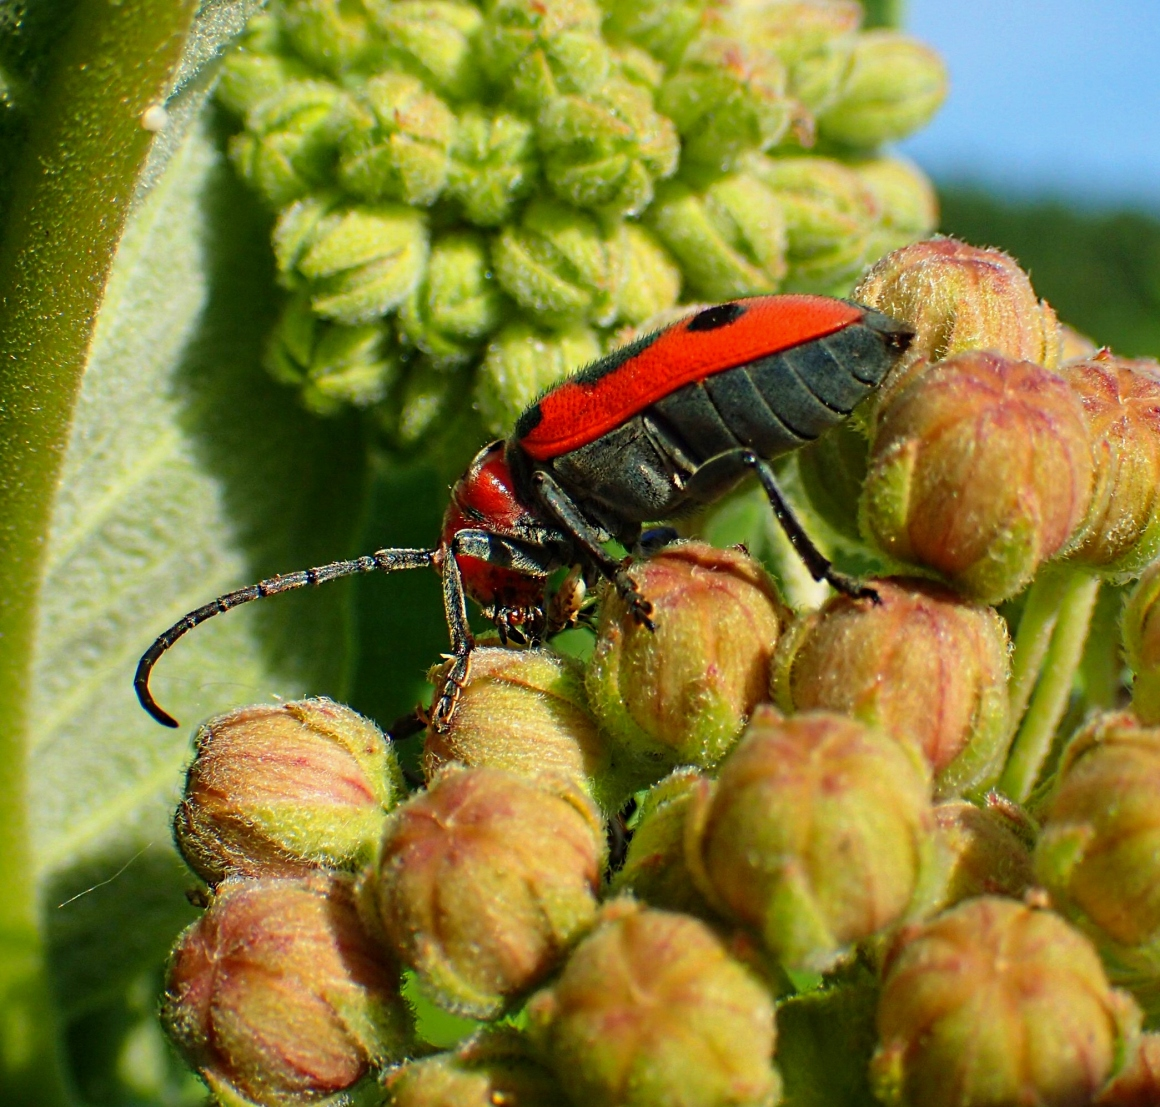 Fruit-fly eating right next to the jaws of a Milkweed Beetle!  Photo by Thomas Peace 2014